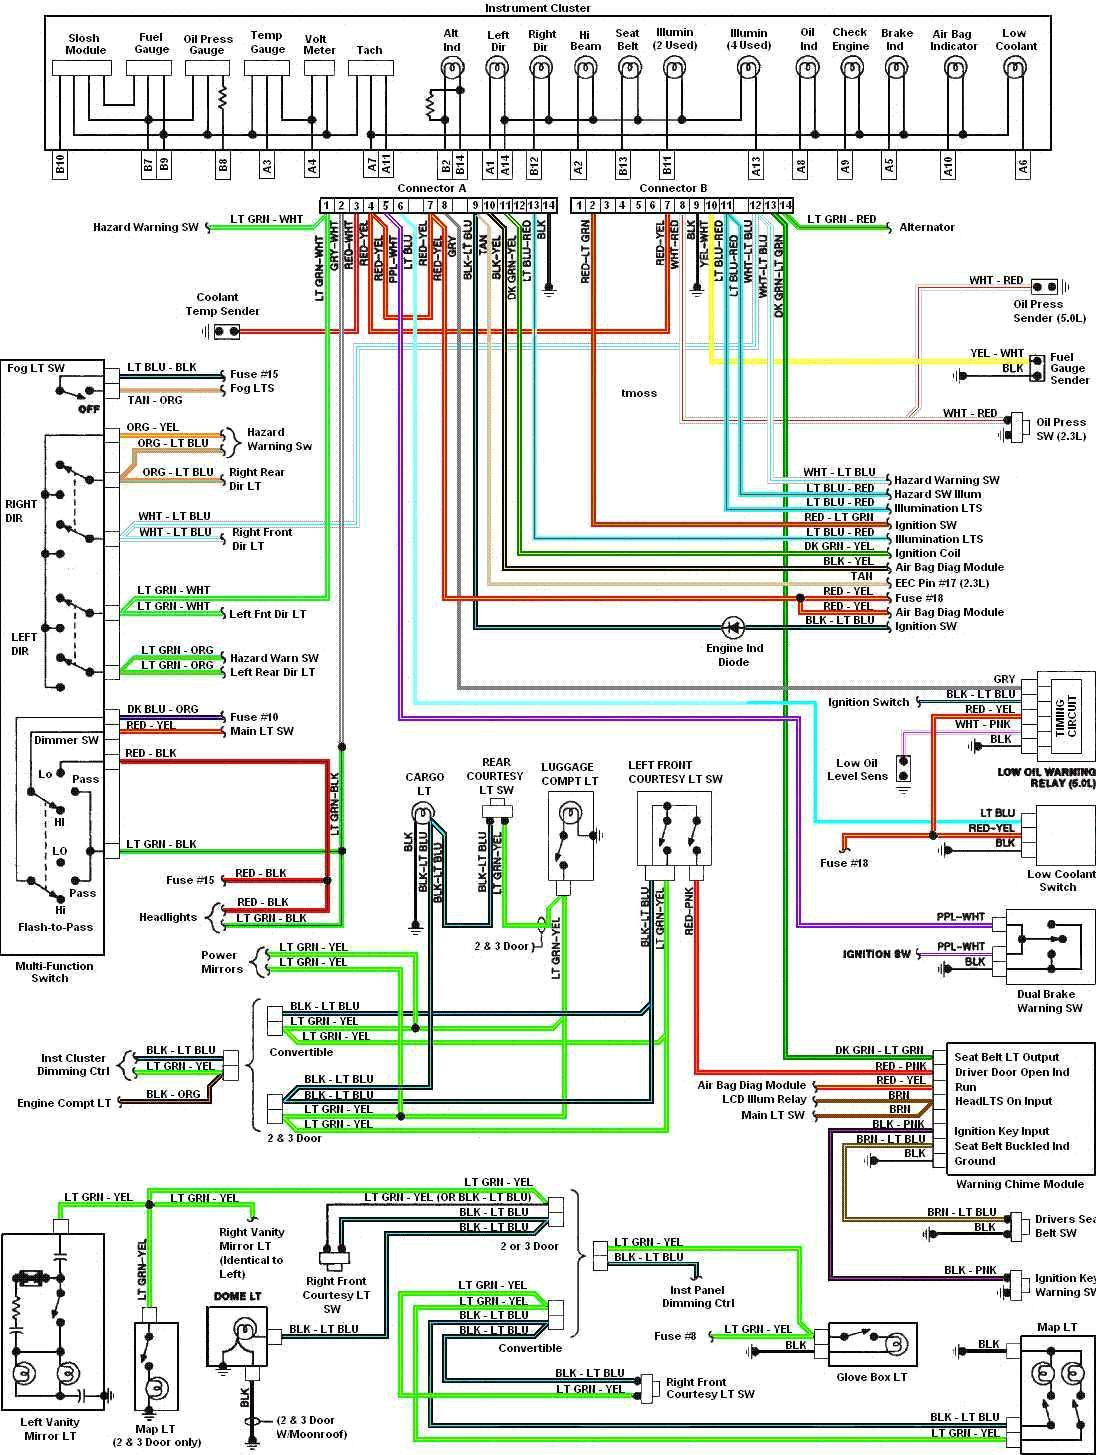 2004 Ford F350 Fuse Box 13 F550 Diagram Wiring Library F450 Super Duty Smart Diagrams U2022 Rh Emgsolutions Co 2008 04